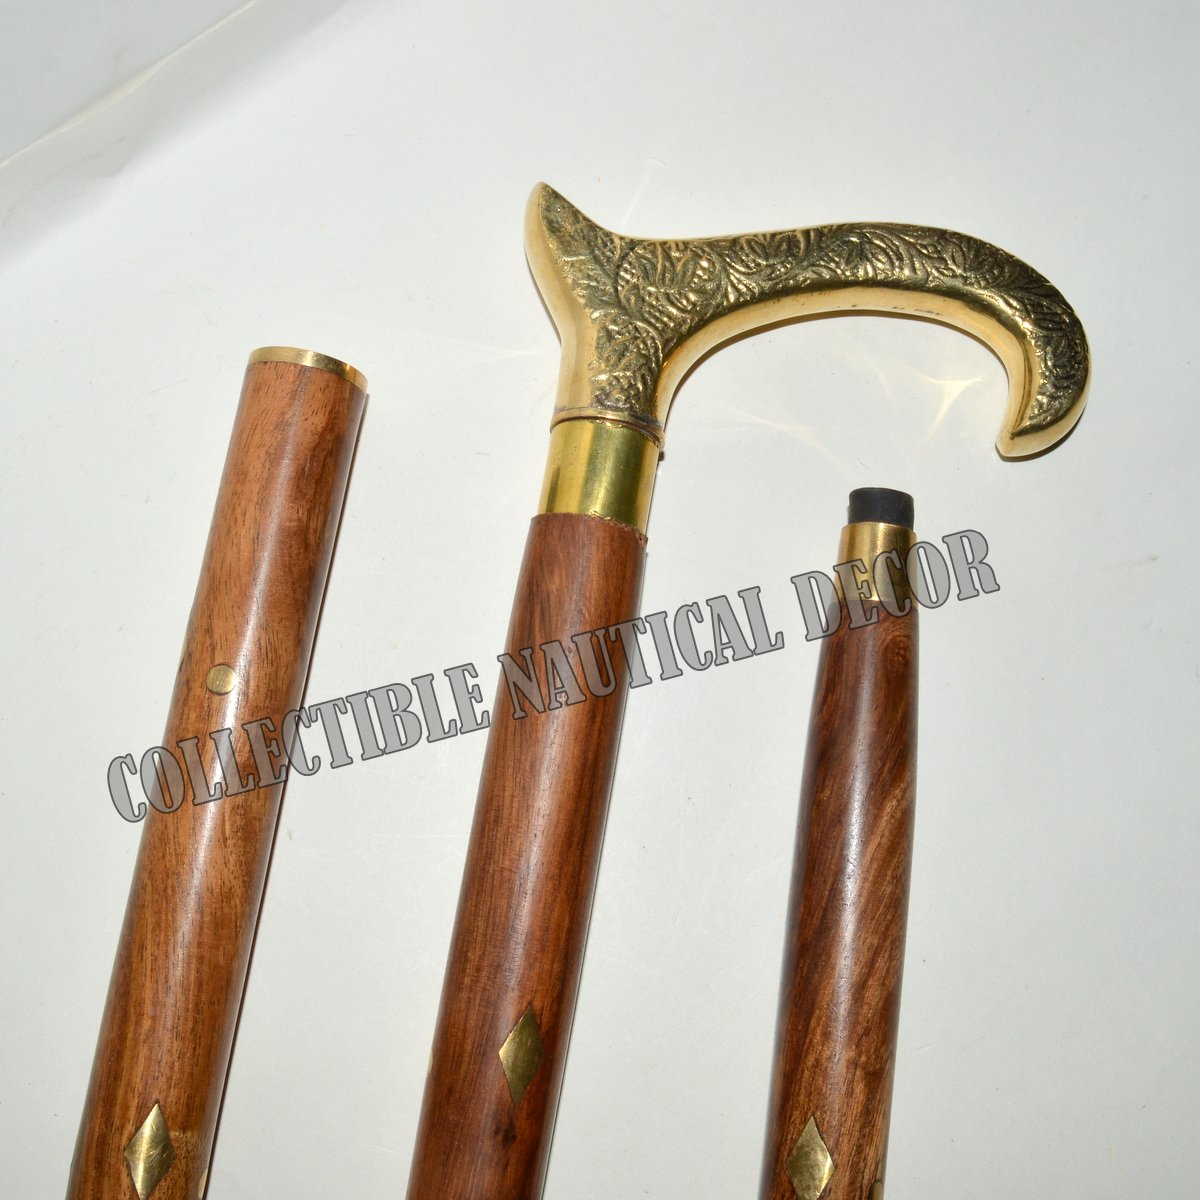 Nautical ANTIQUE Brass Head Handle Wooden Canes Walking Stick Handmade Style